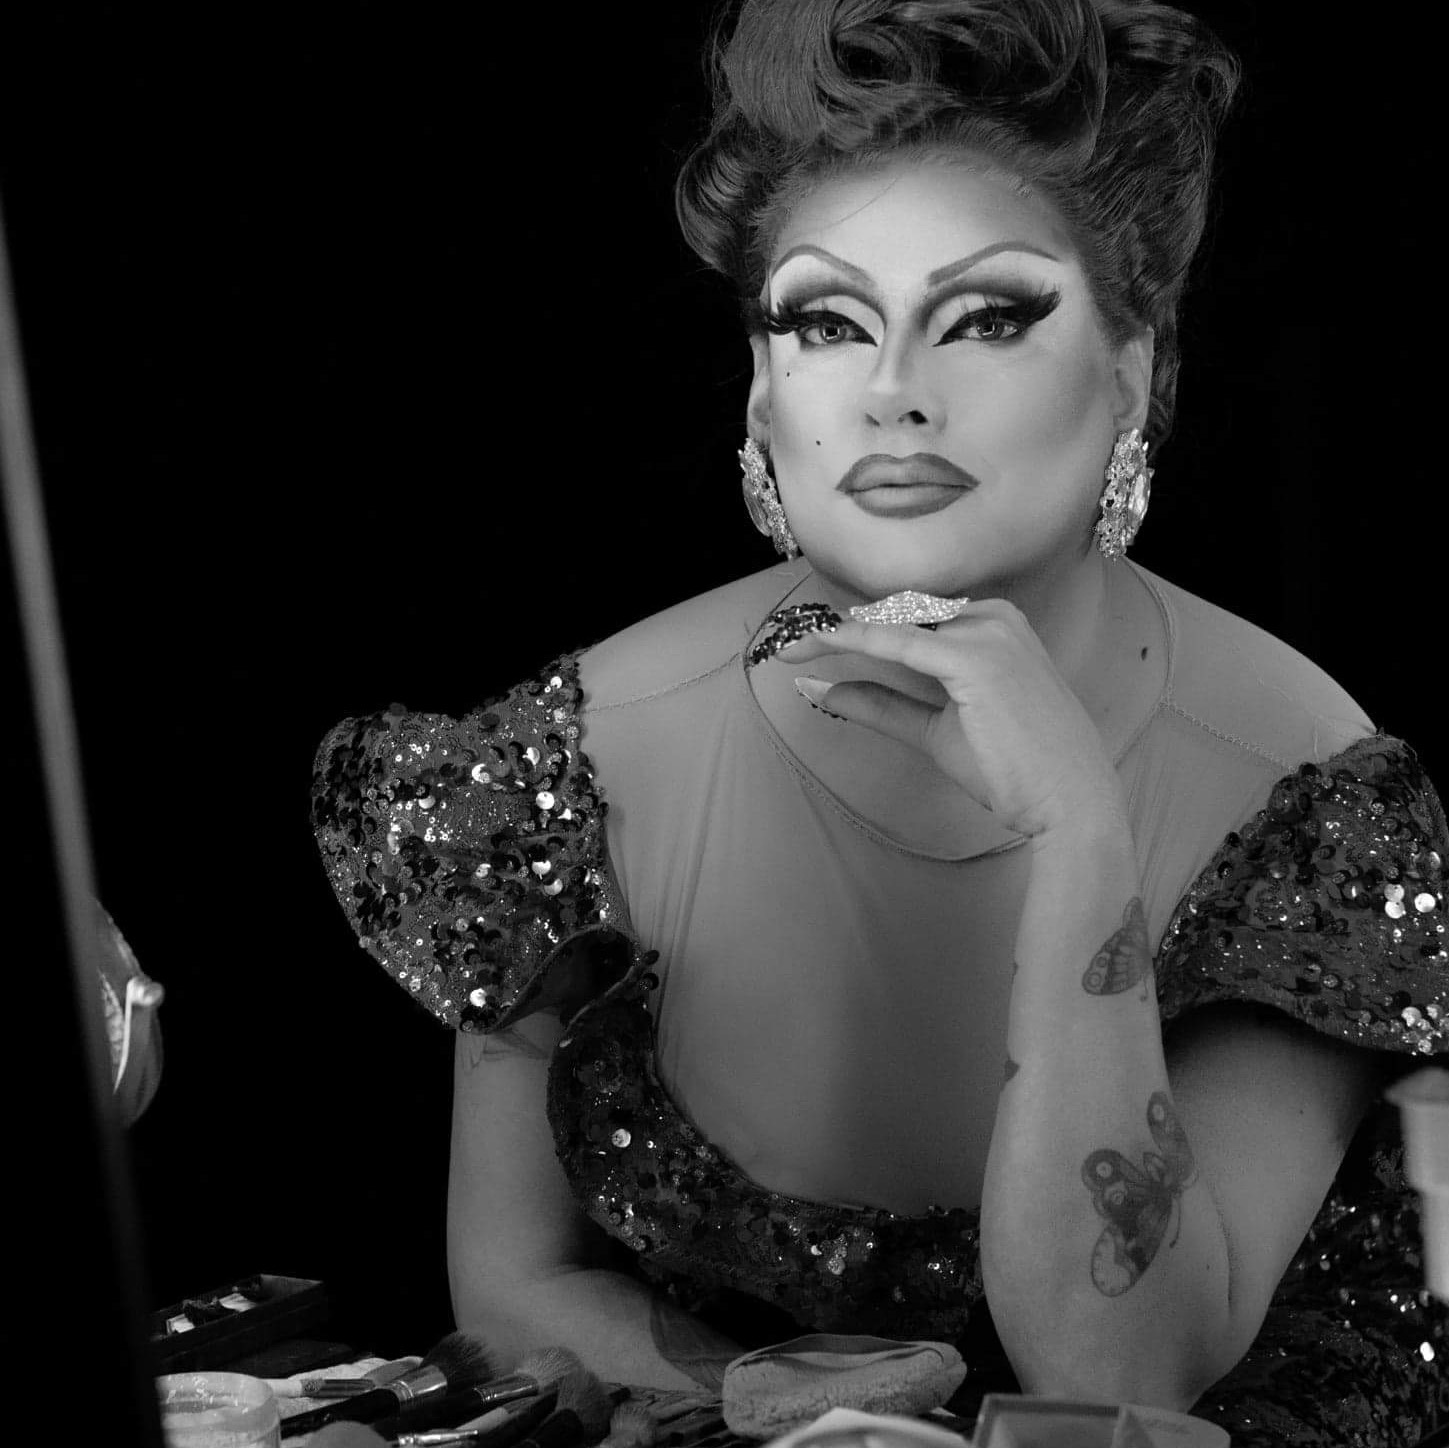 Syren Halston - Syren Halston is the alter ego of Jacob Aguirre, a trained singer and dancer who has been performing in drag for the past 15 years. He is excited to be back, and part of the Fant-A-She's family once again.